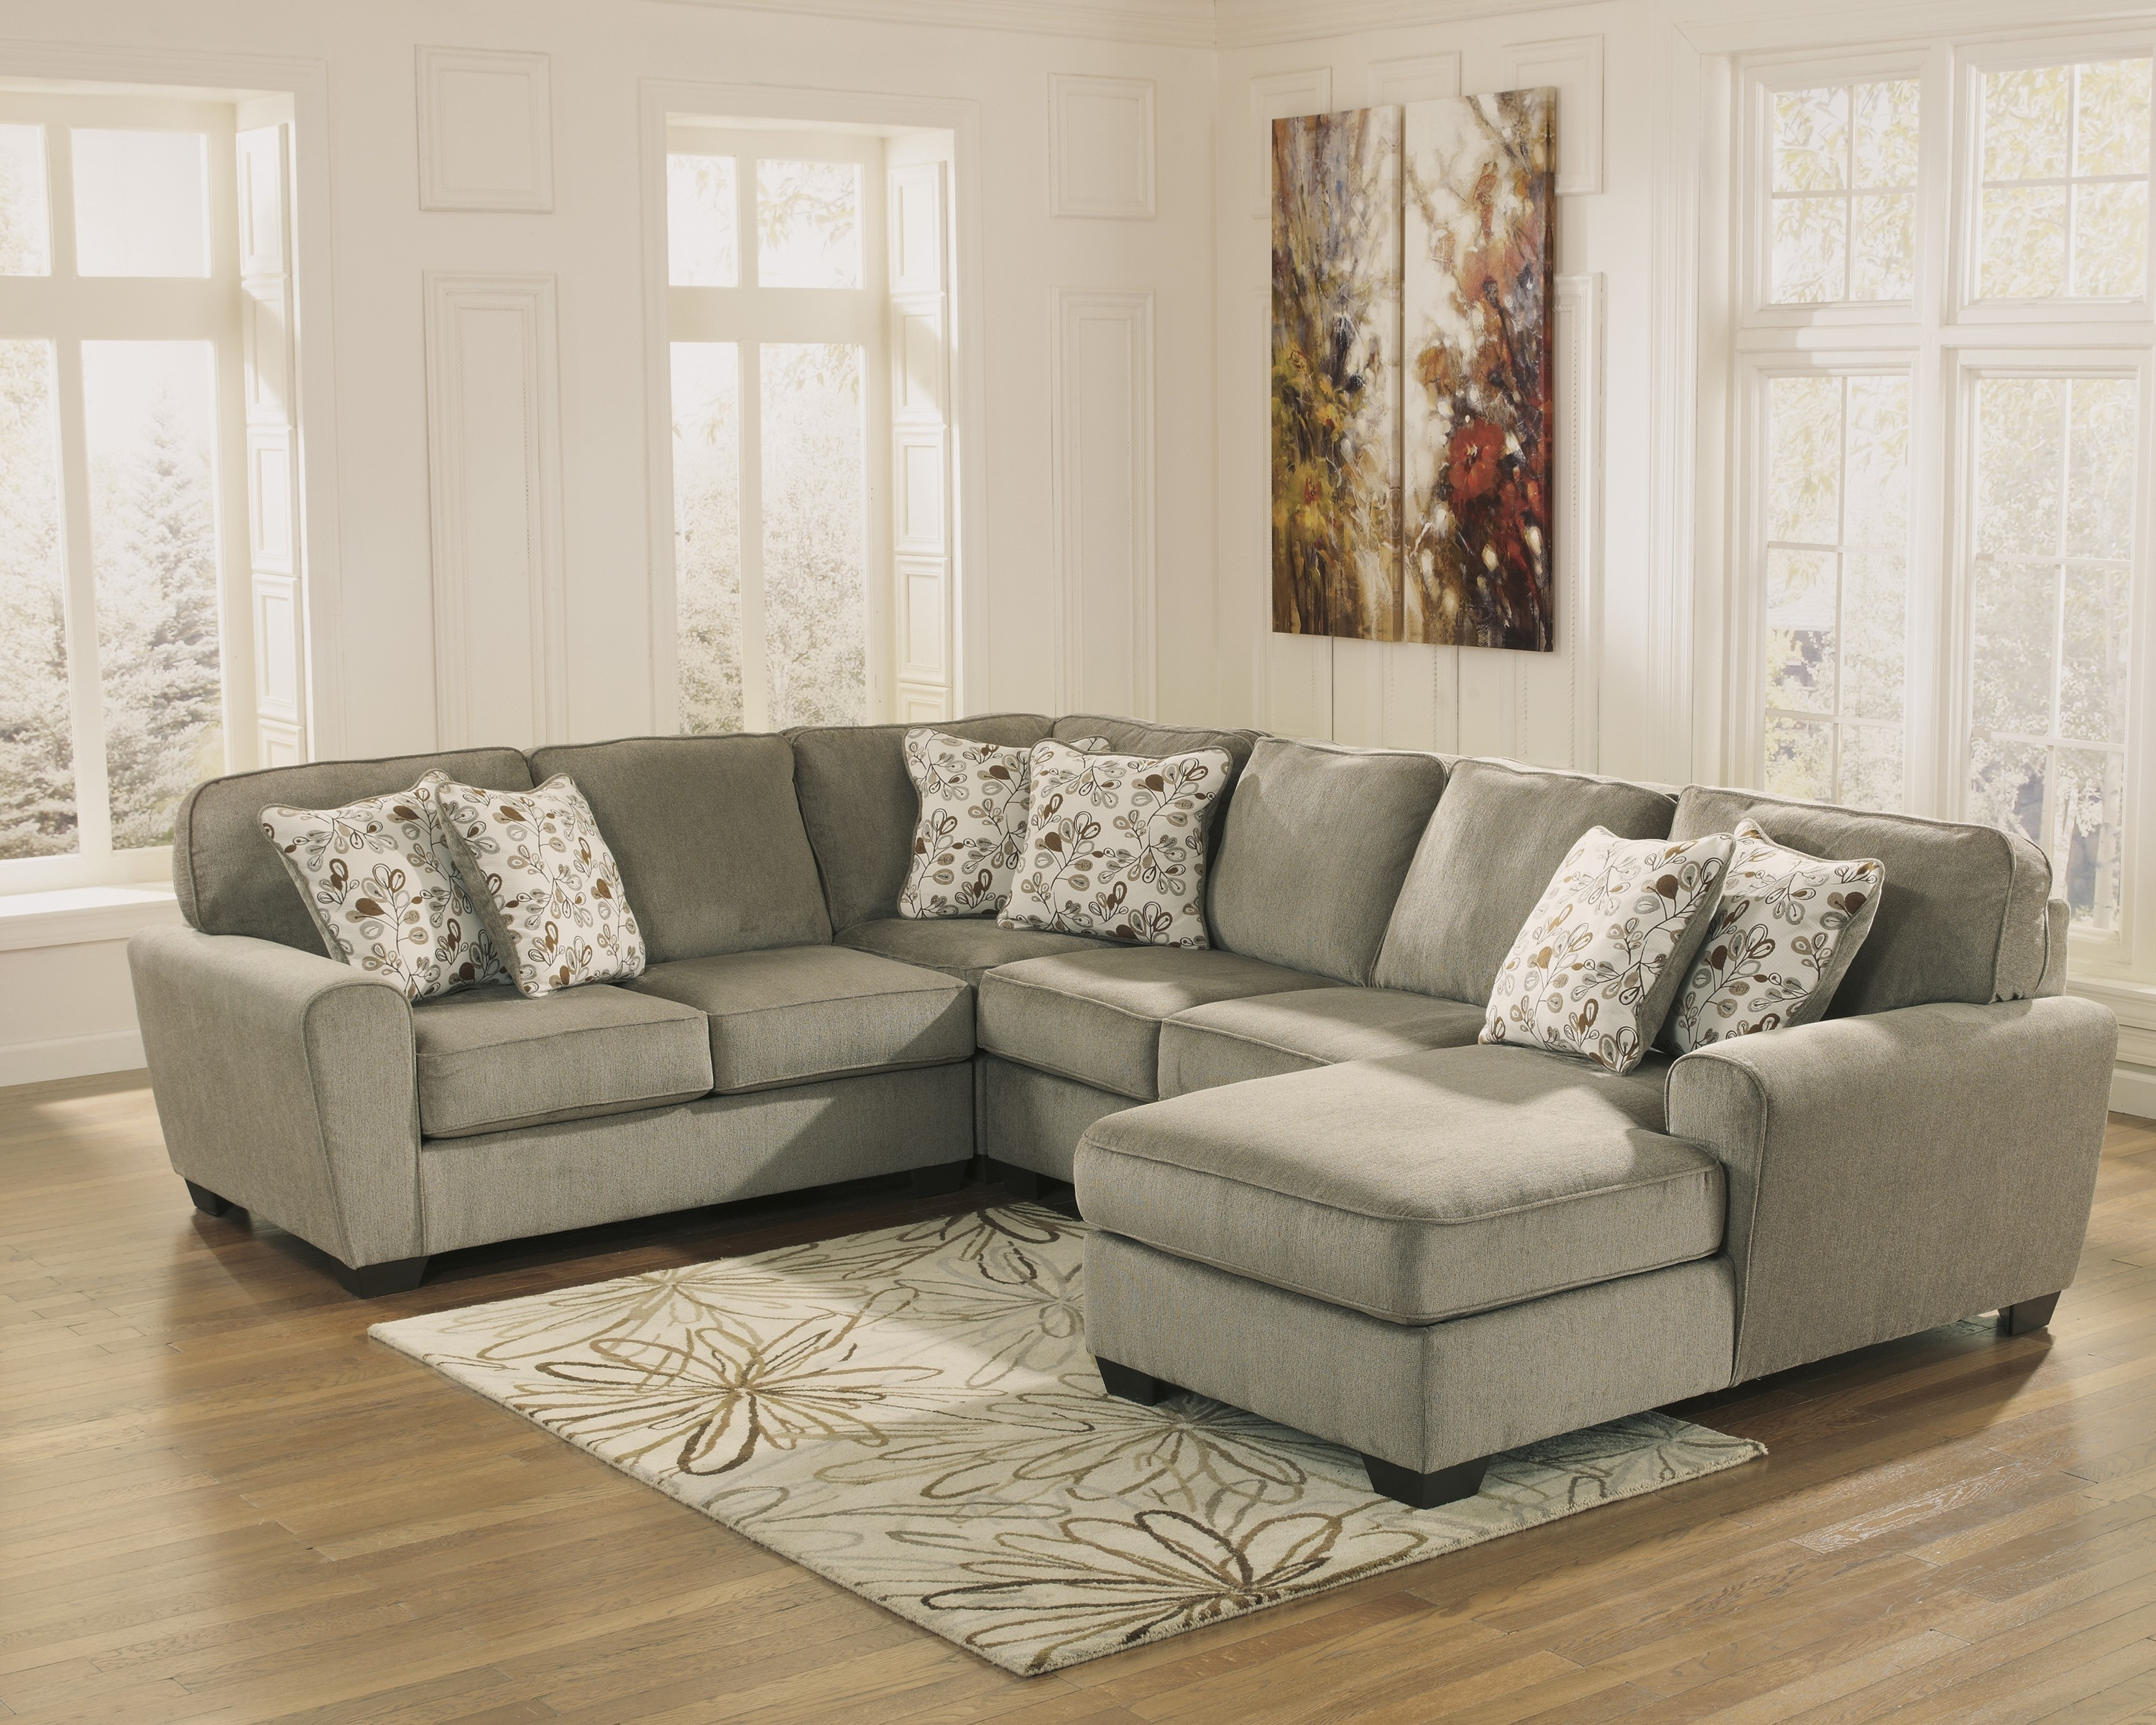 Preferred Patola Park Patina 4 Piece Sectional Set With Left Arm Facing Pertaining To Elk Grove Ca Sectional Sofas (View 17 of 20)